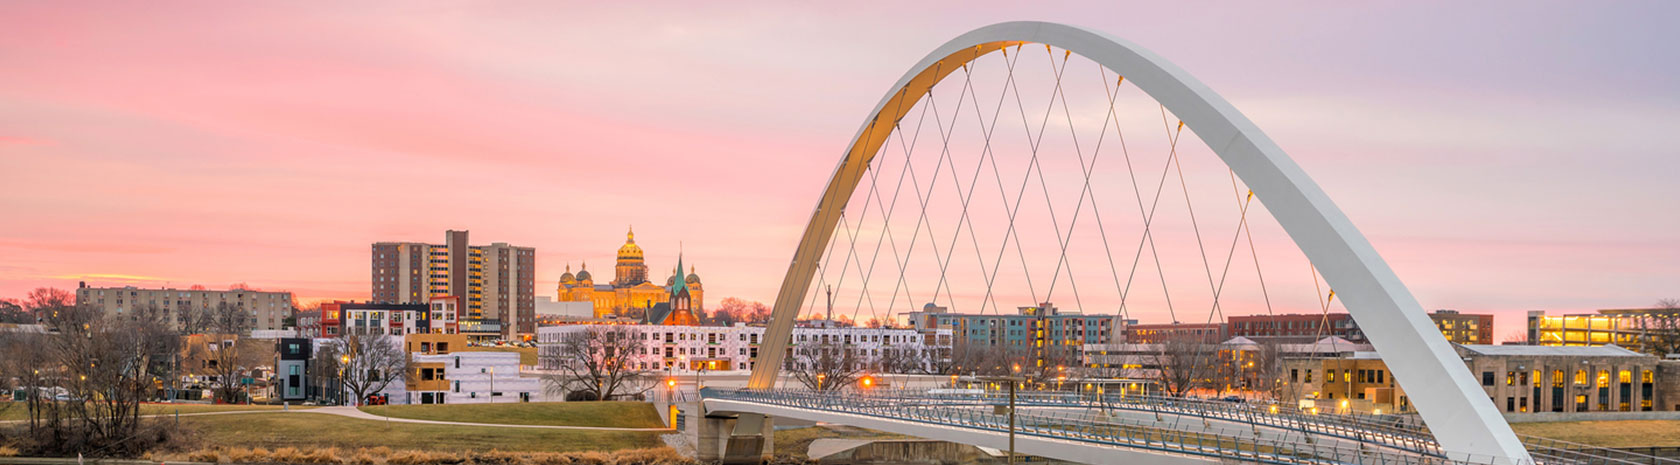 A sunset shot of a single arched bridge with the city buildings in the background